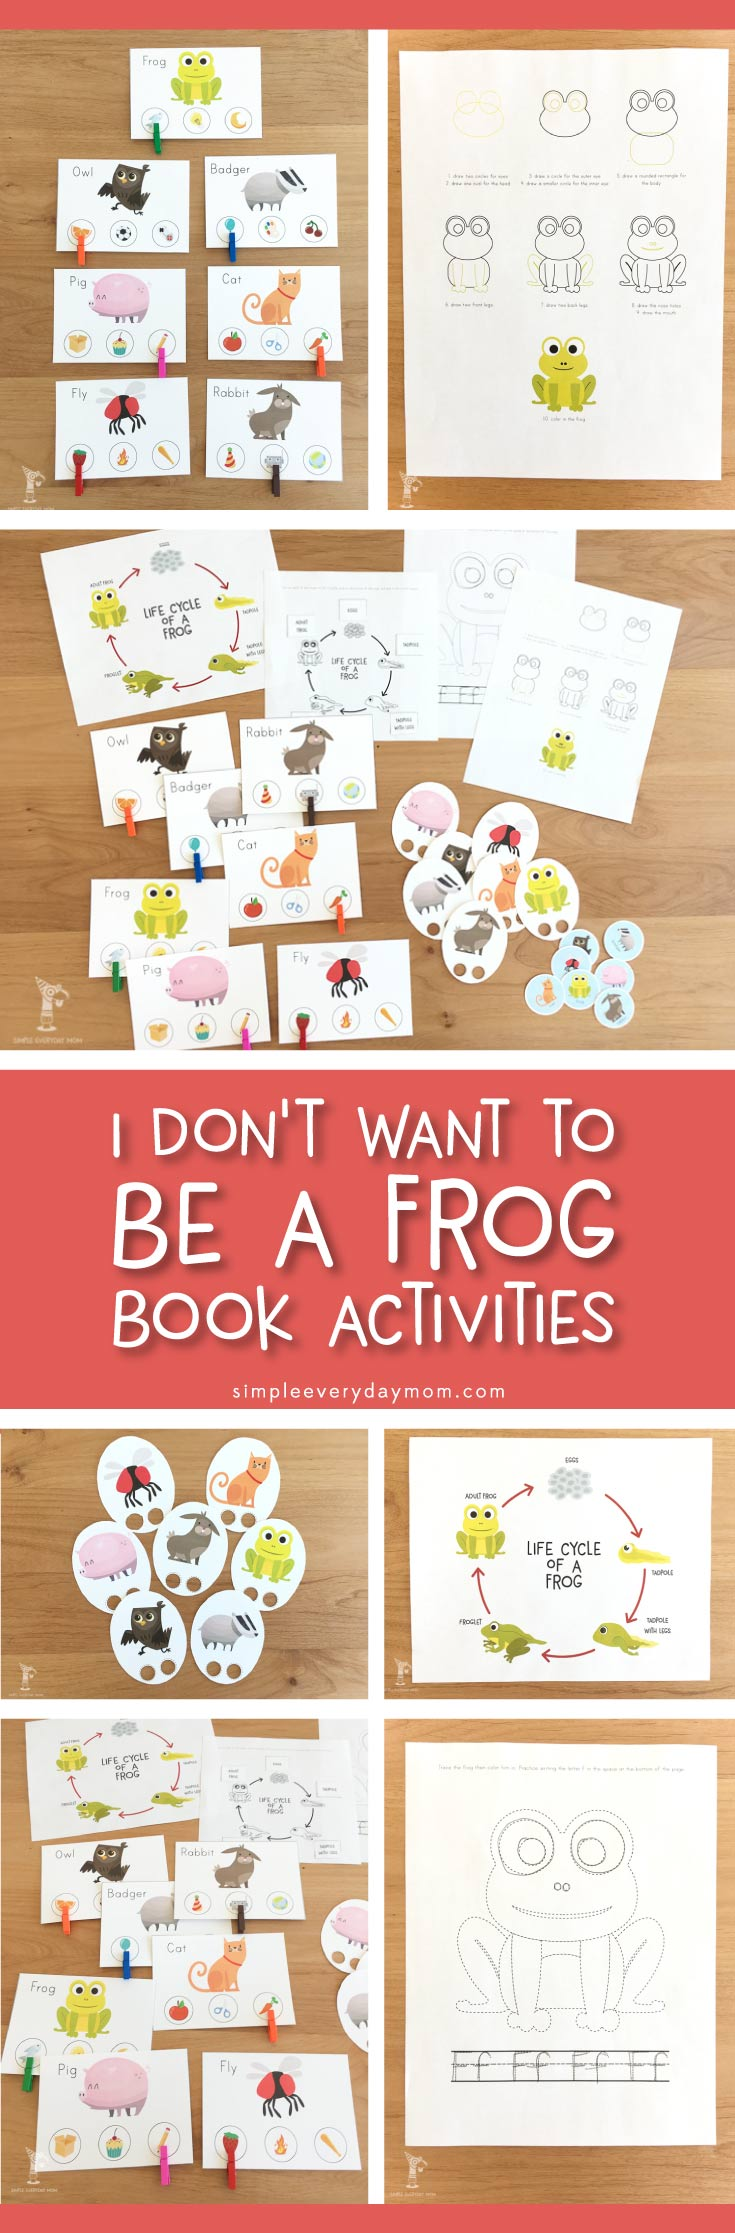 I Don't Want To Be A Frog Book Activities | Kids love these activities because they're so fun and moms love them because they're educational and easy to implement.